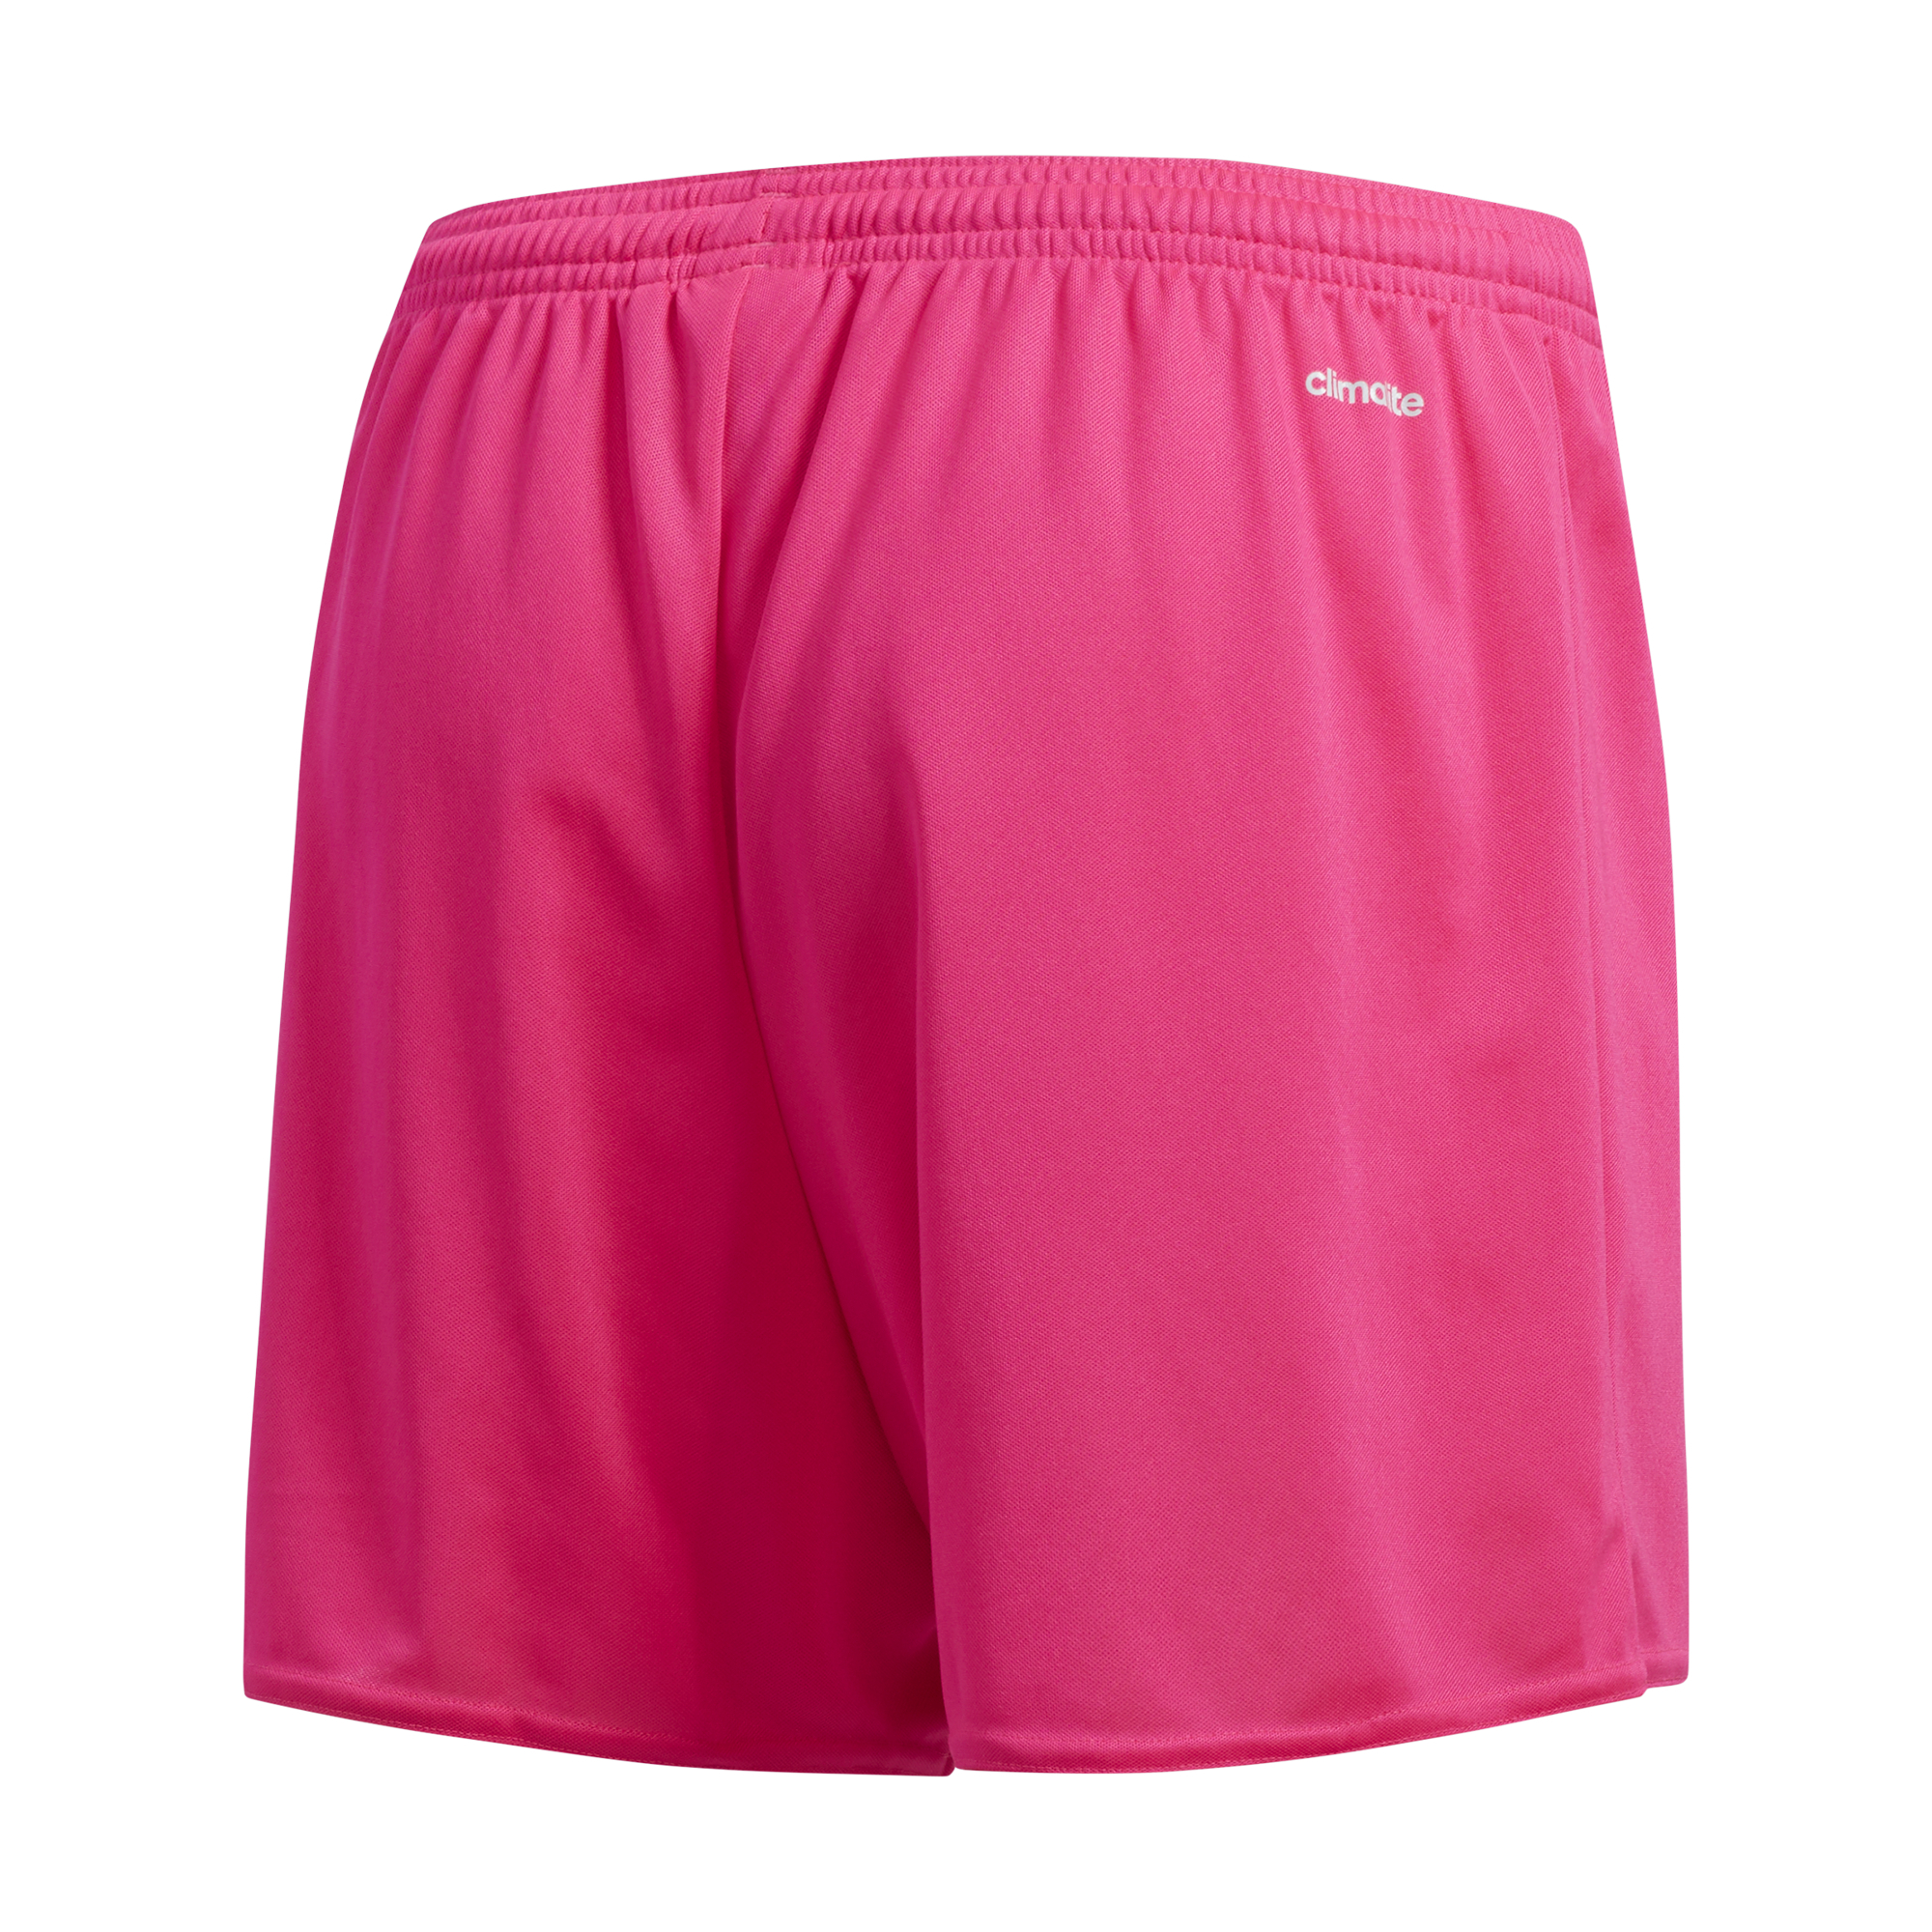 Women's Parma 16 Short, Pink/White, swatch